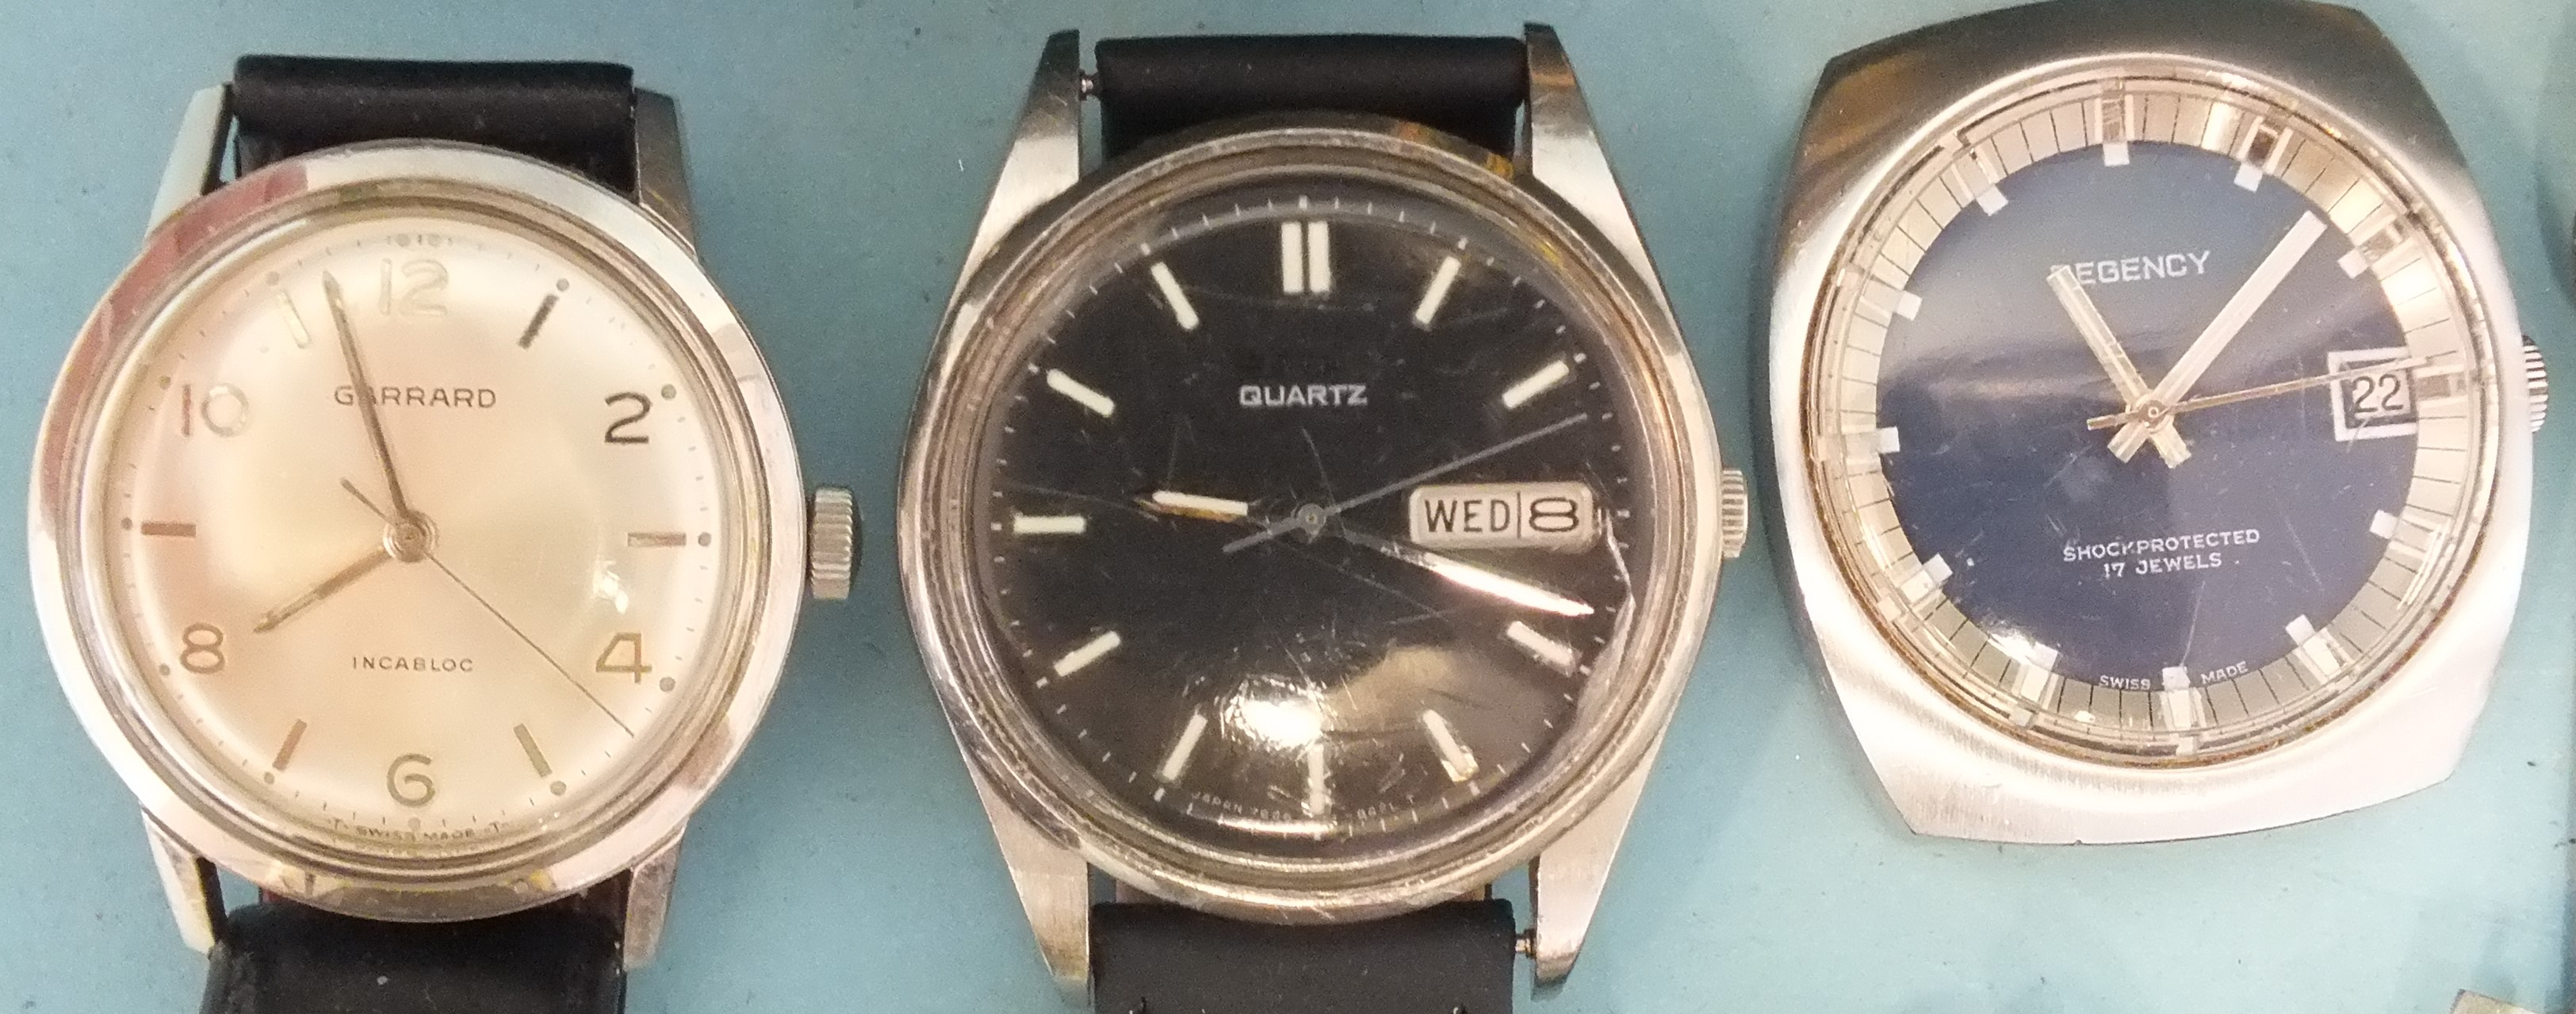 Garrard, a gentleman's Garrard Incabloc steel-cased wrist watch and other watches, in an Omega - Image 2 of 2